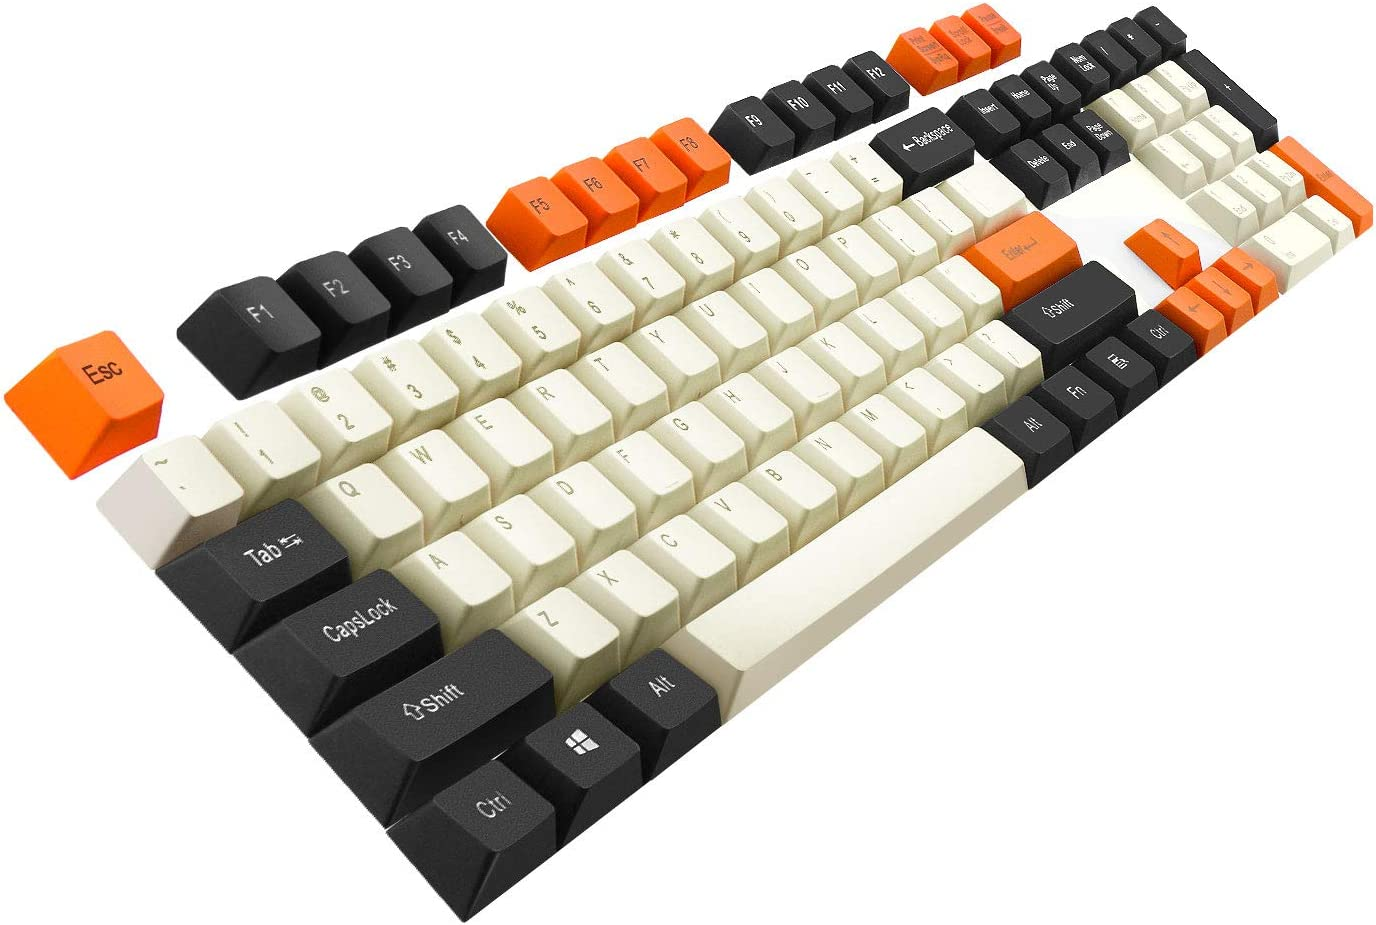 Keycaps Havit PBT Keycaps 67 87 104 Keys Gaming Keycap Set with Puller for DIY Cherry MX Mechanical Keyboard(Black & White & Orange)